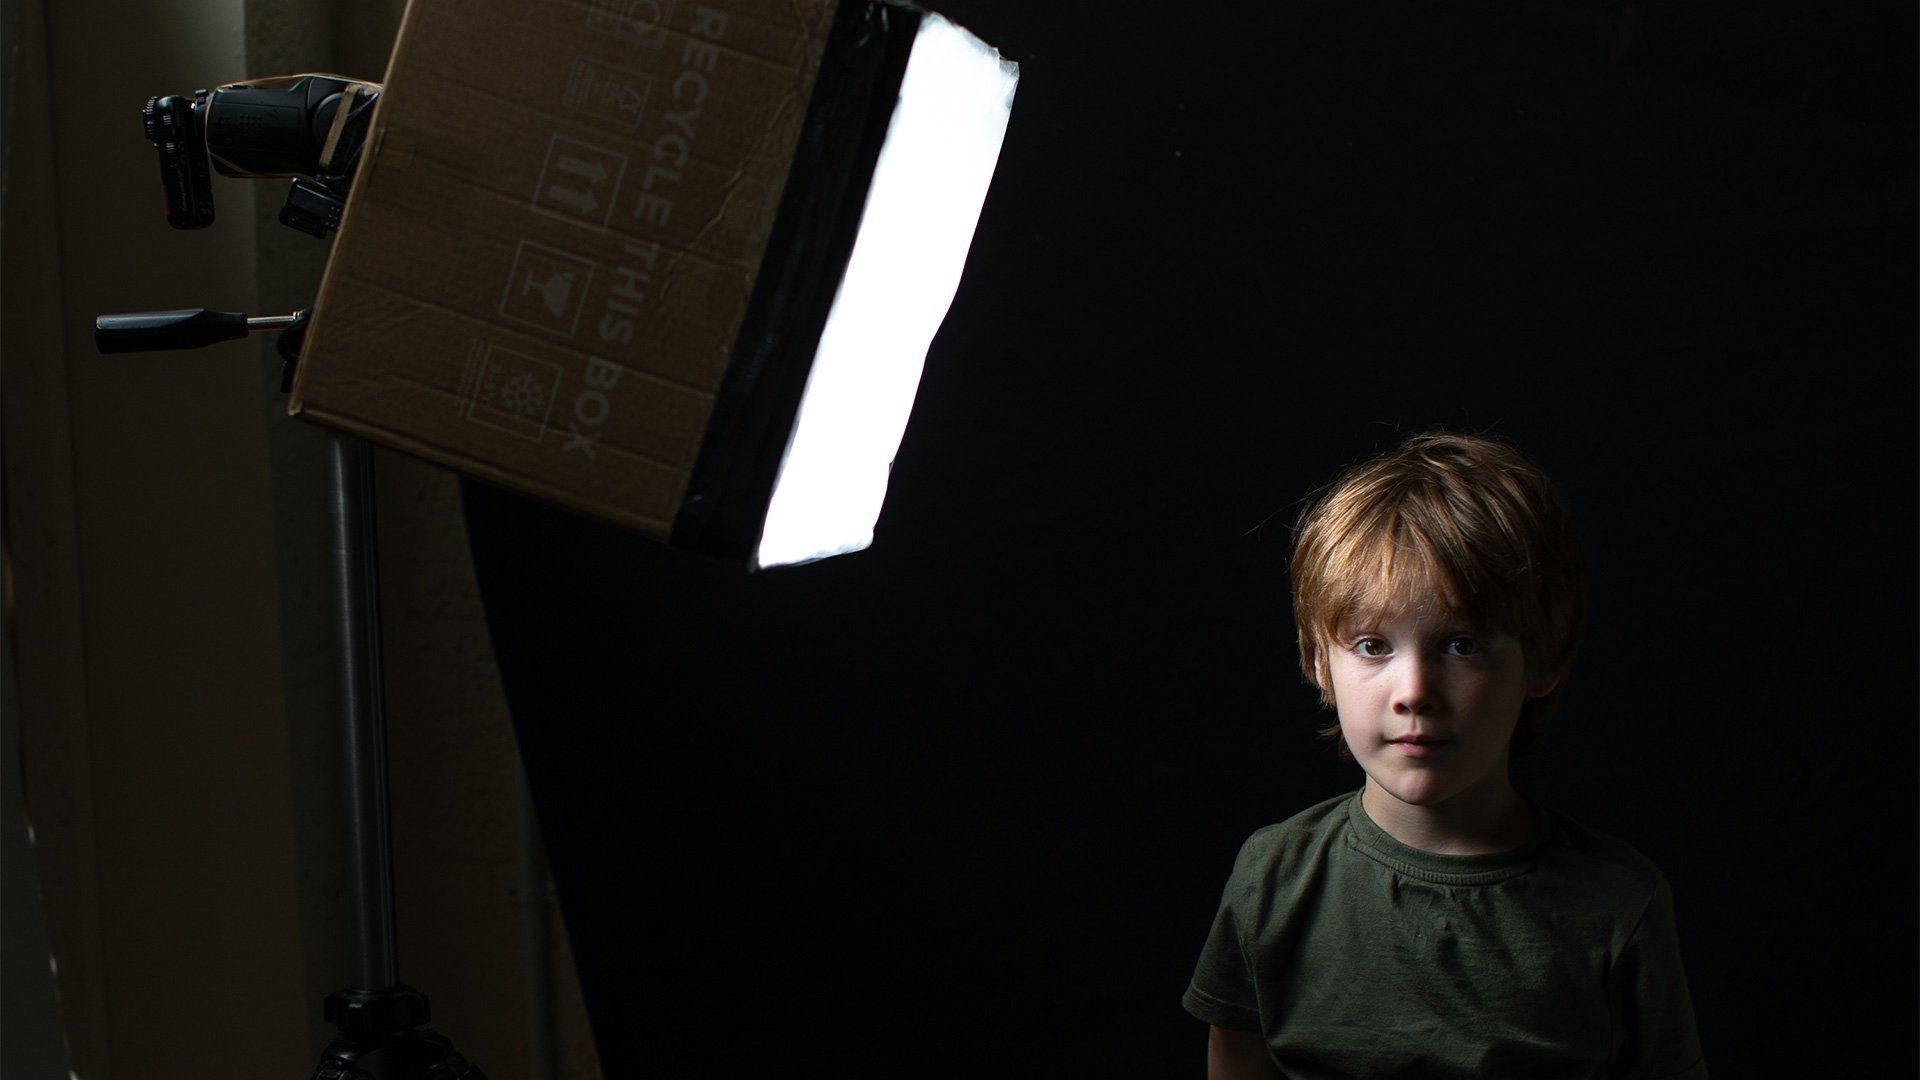 A young boy is lit from one side by a homemade softbox on a stand.